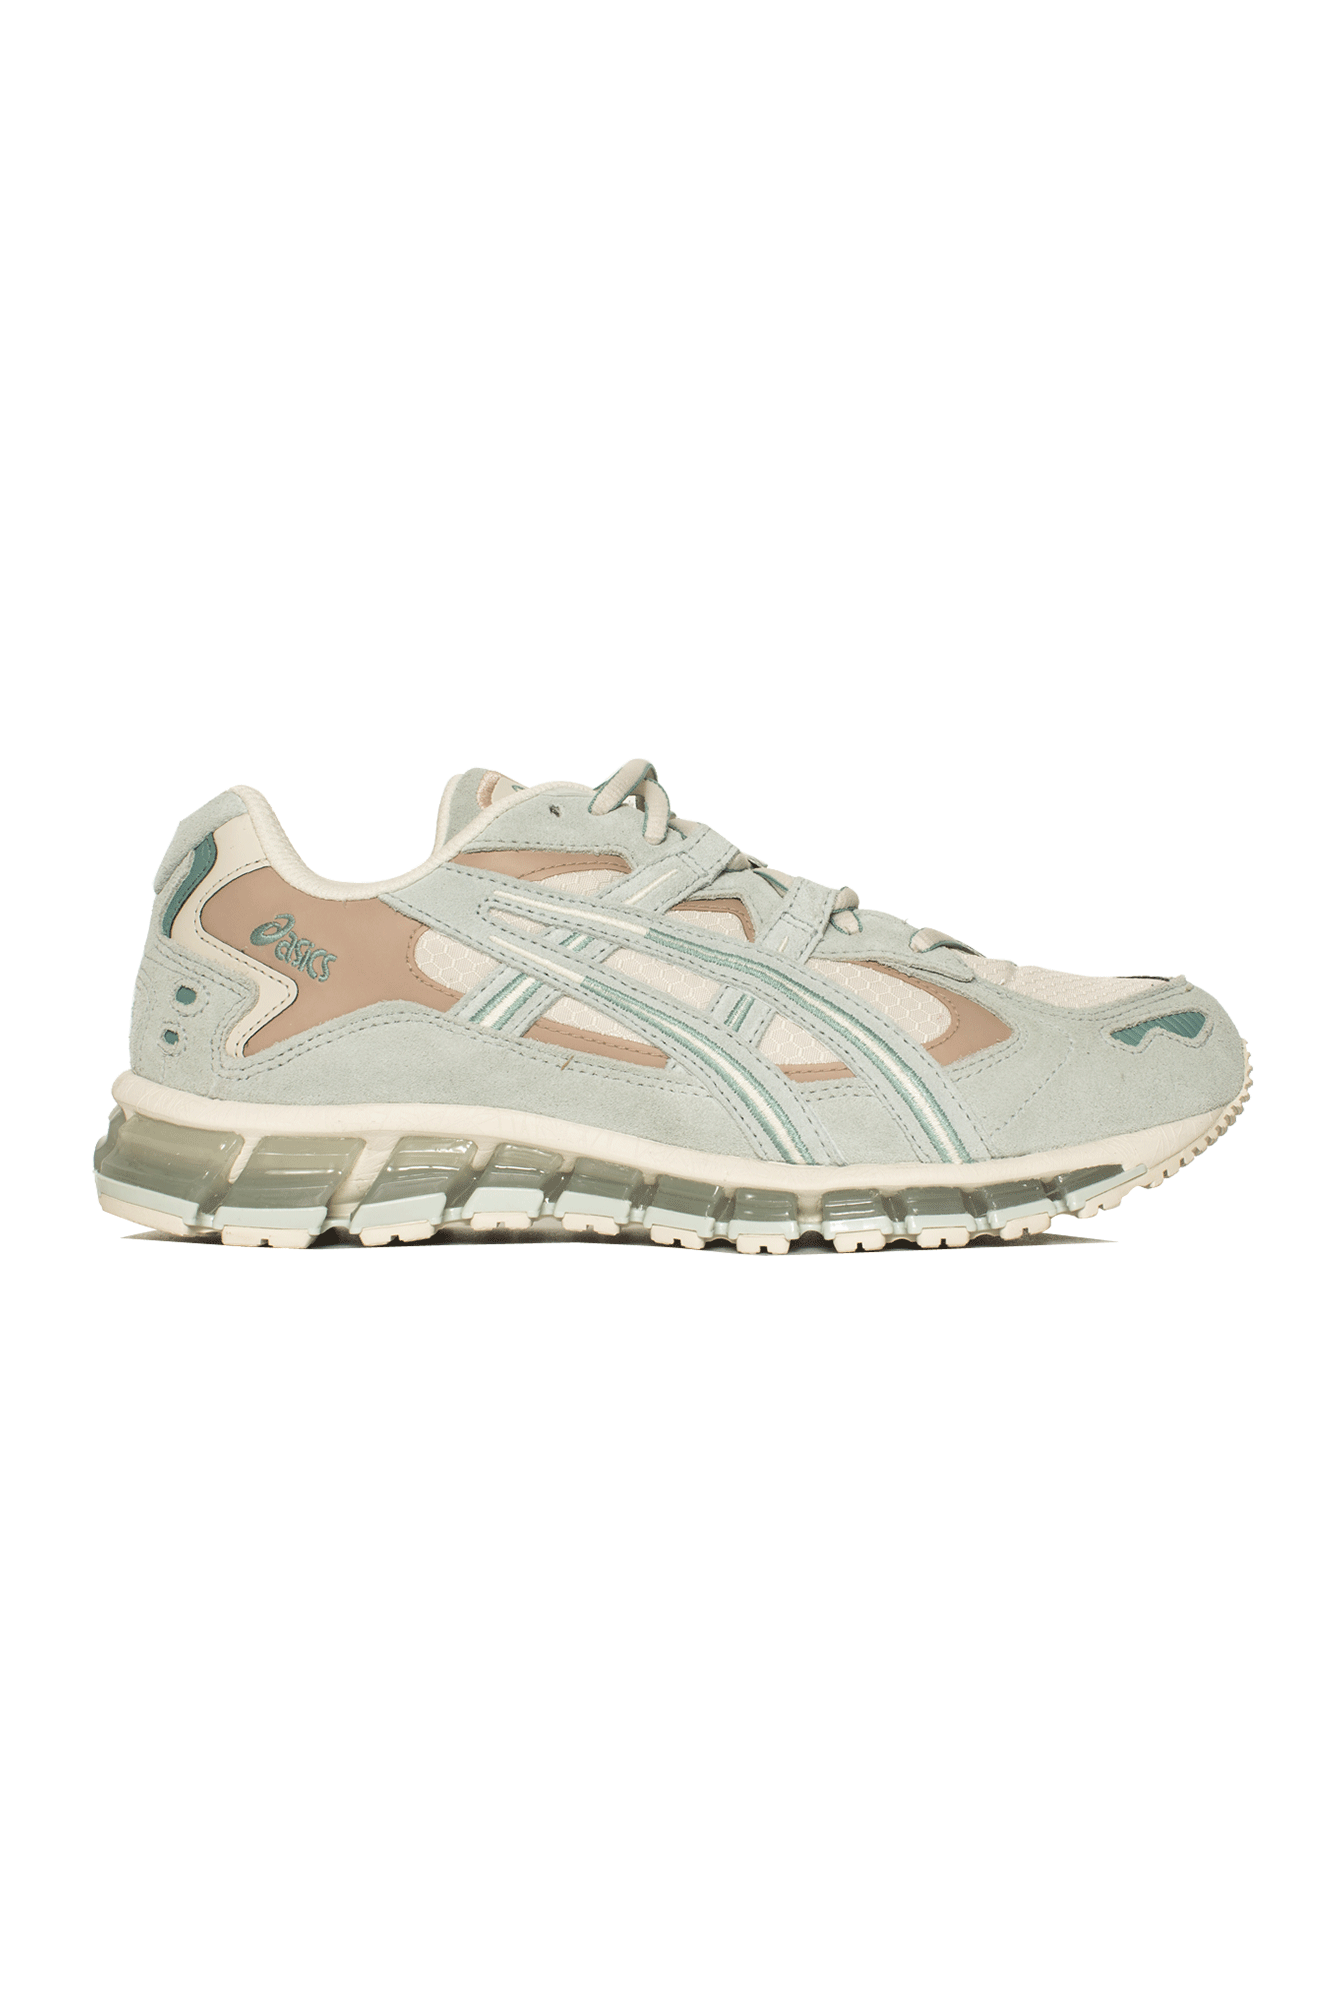 Gel-Kayano 5 360 G-TX Marrone